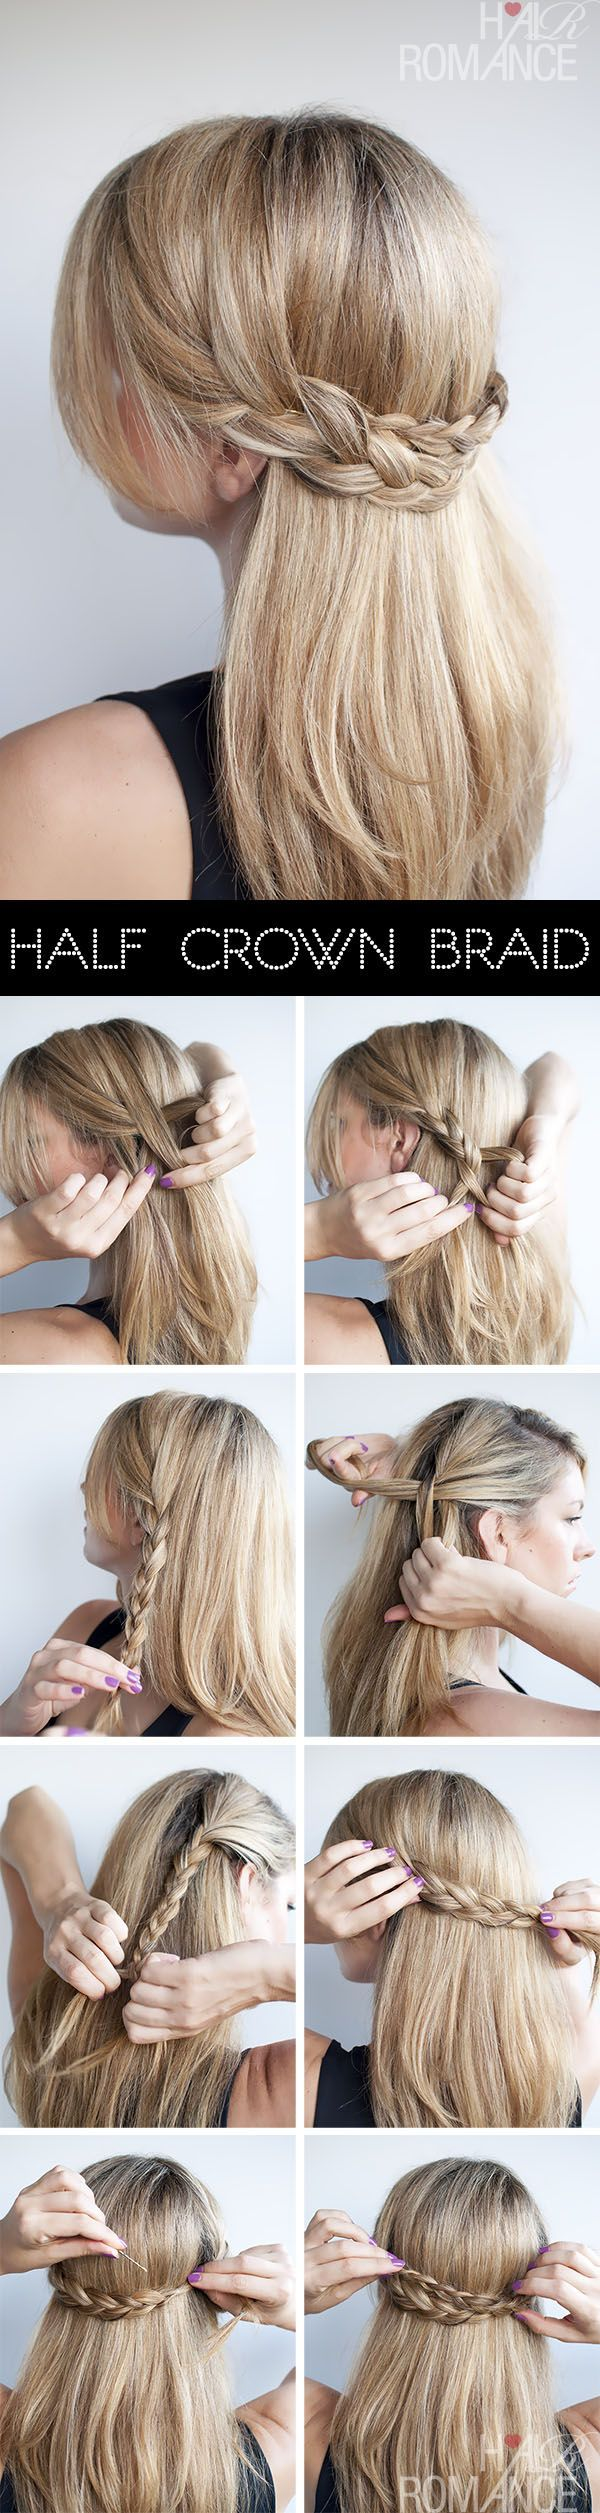 5 cute half updo hairstyles to try | half crown braids, crown